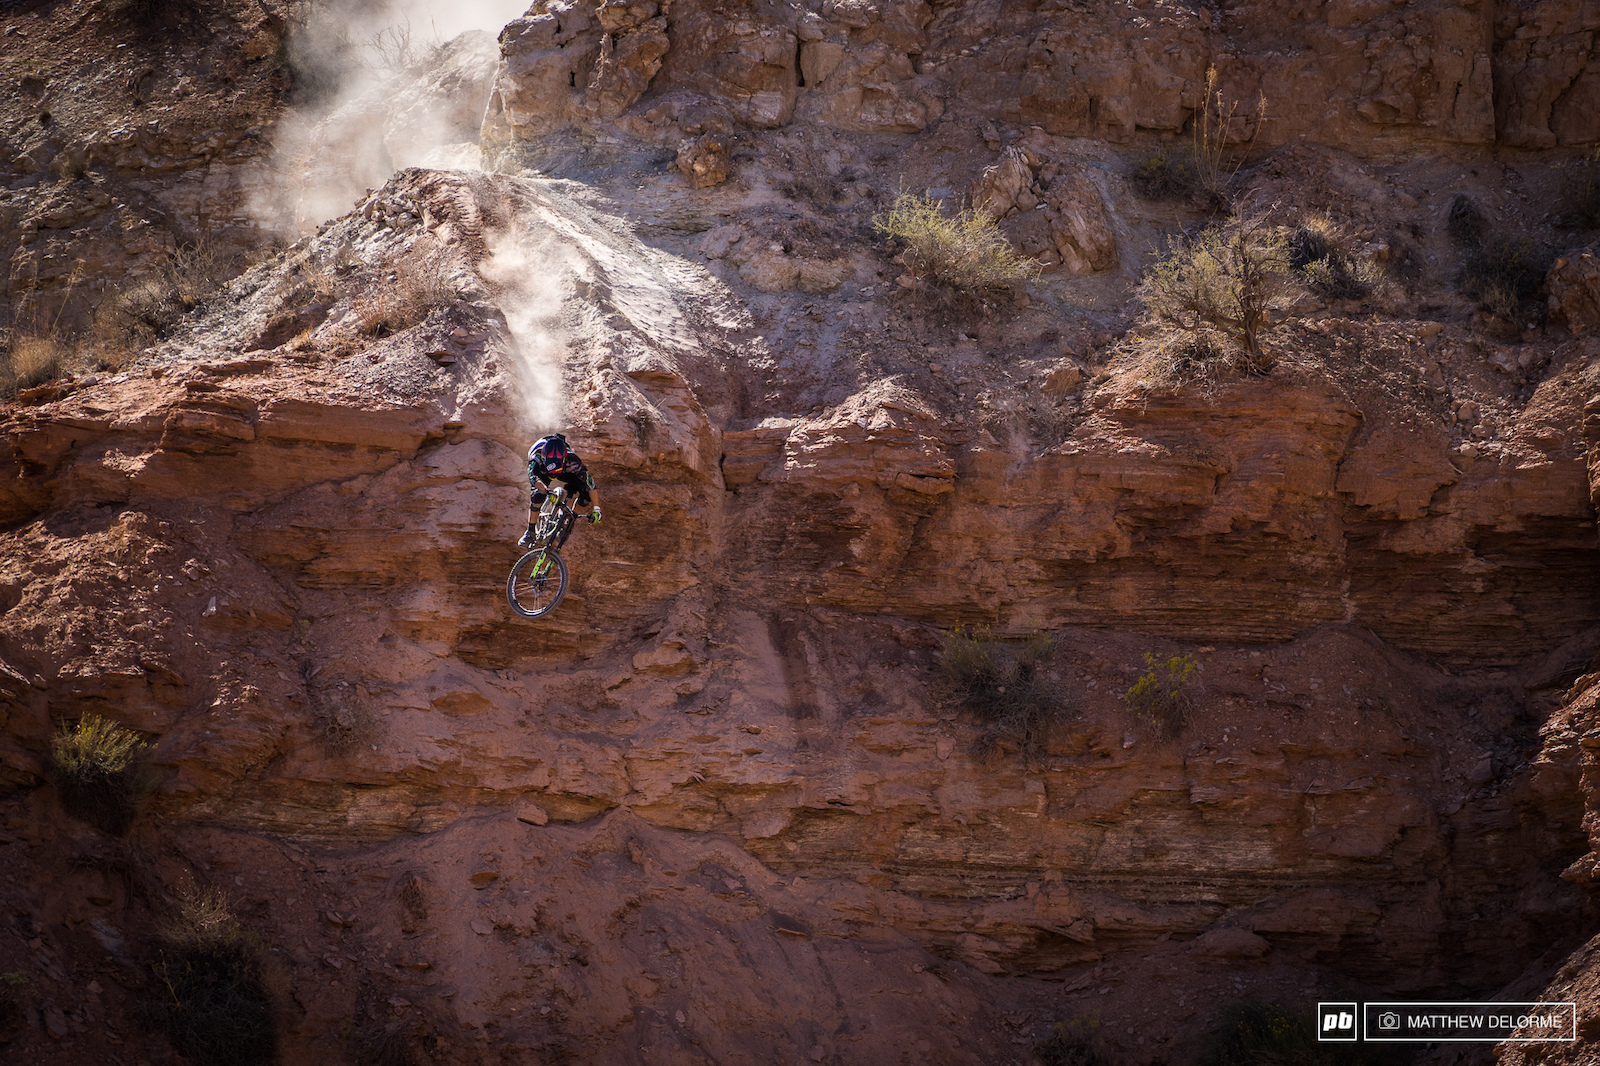 Norbs sending it down a cliff with the fine Virgin dust hot on his tail.